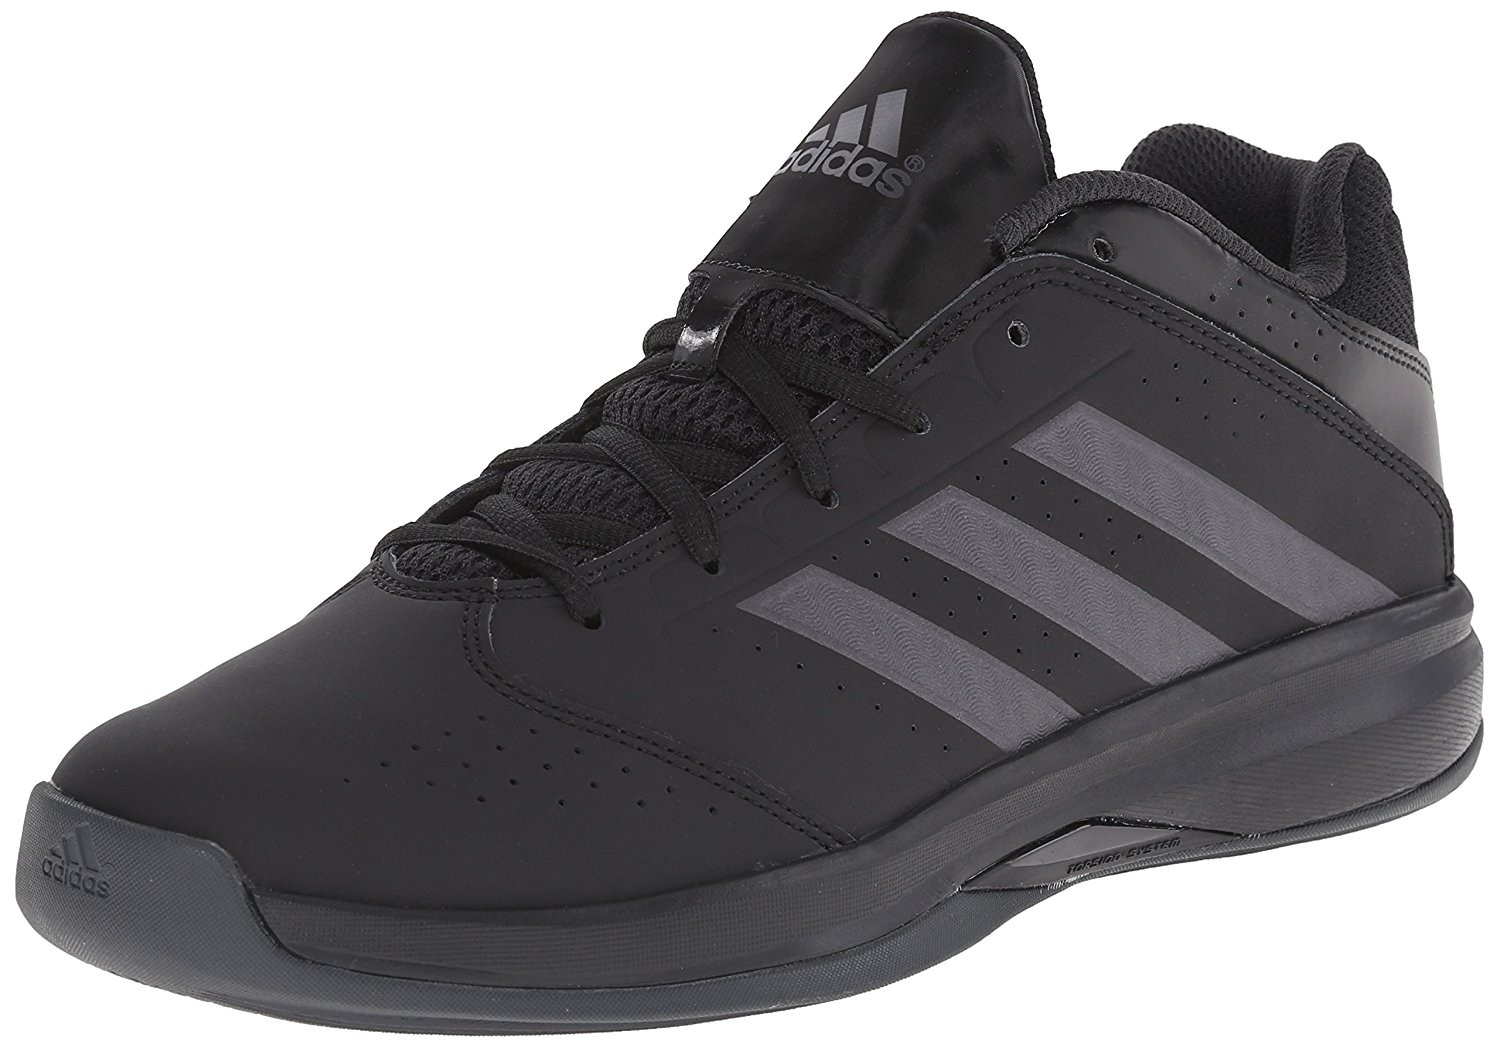 Adidas Isolation 2 Low Black